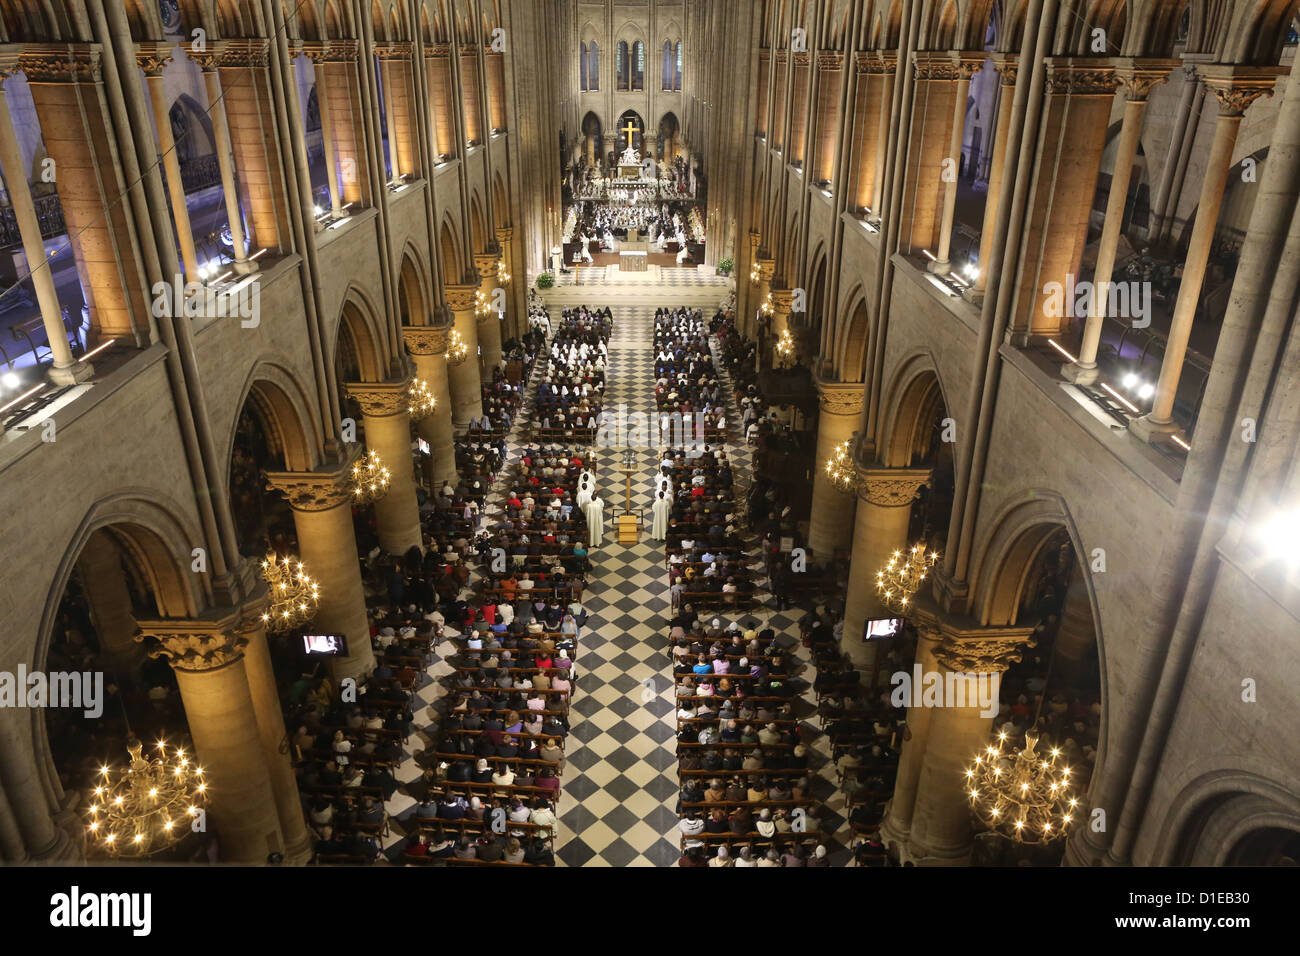 Mass in Notre Dame Cathedral, Paris, France, Europe - Stock Image